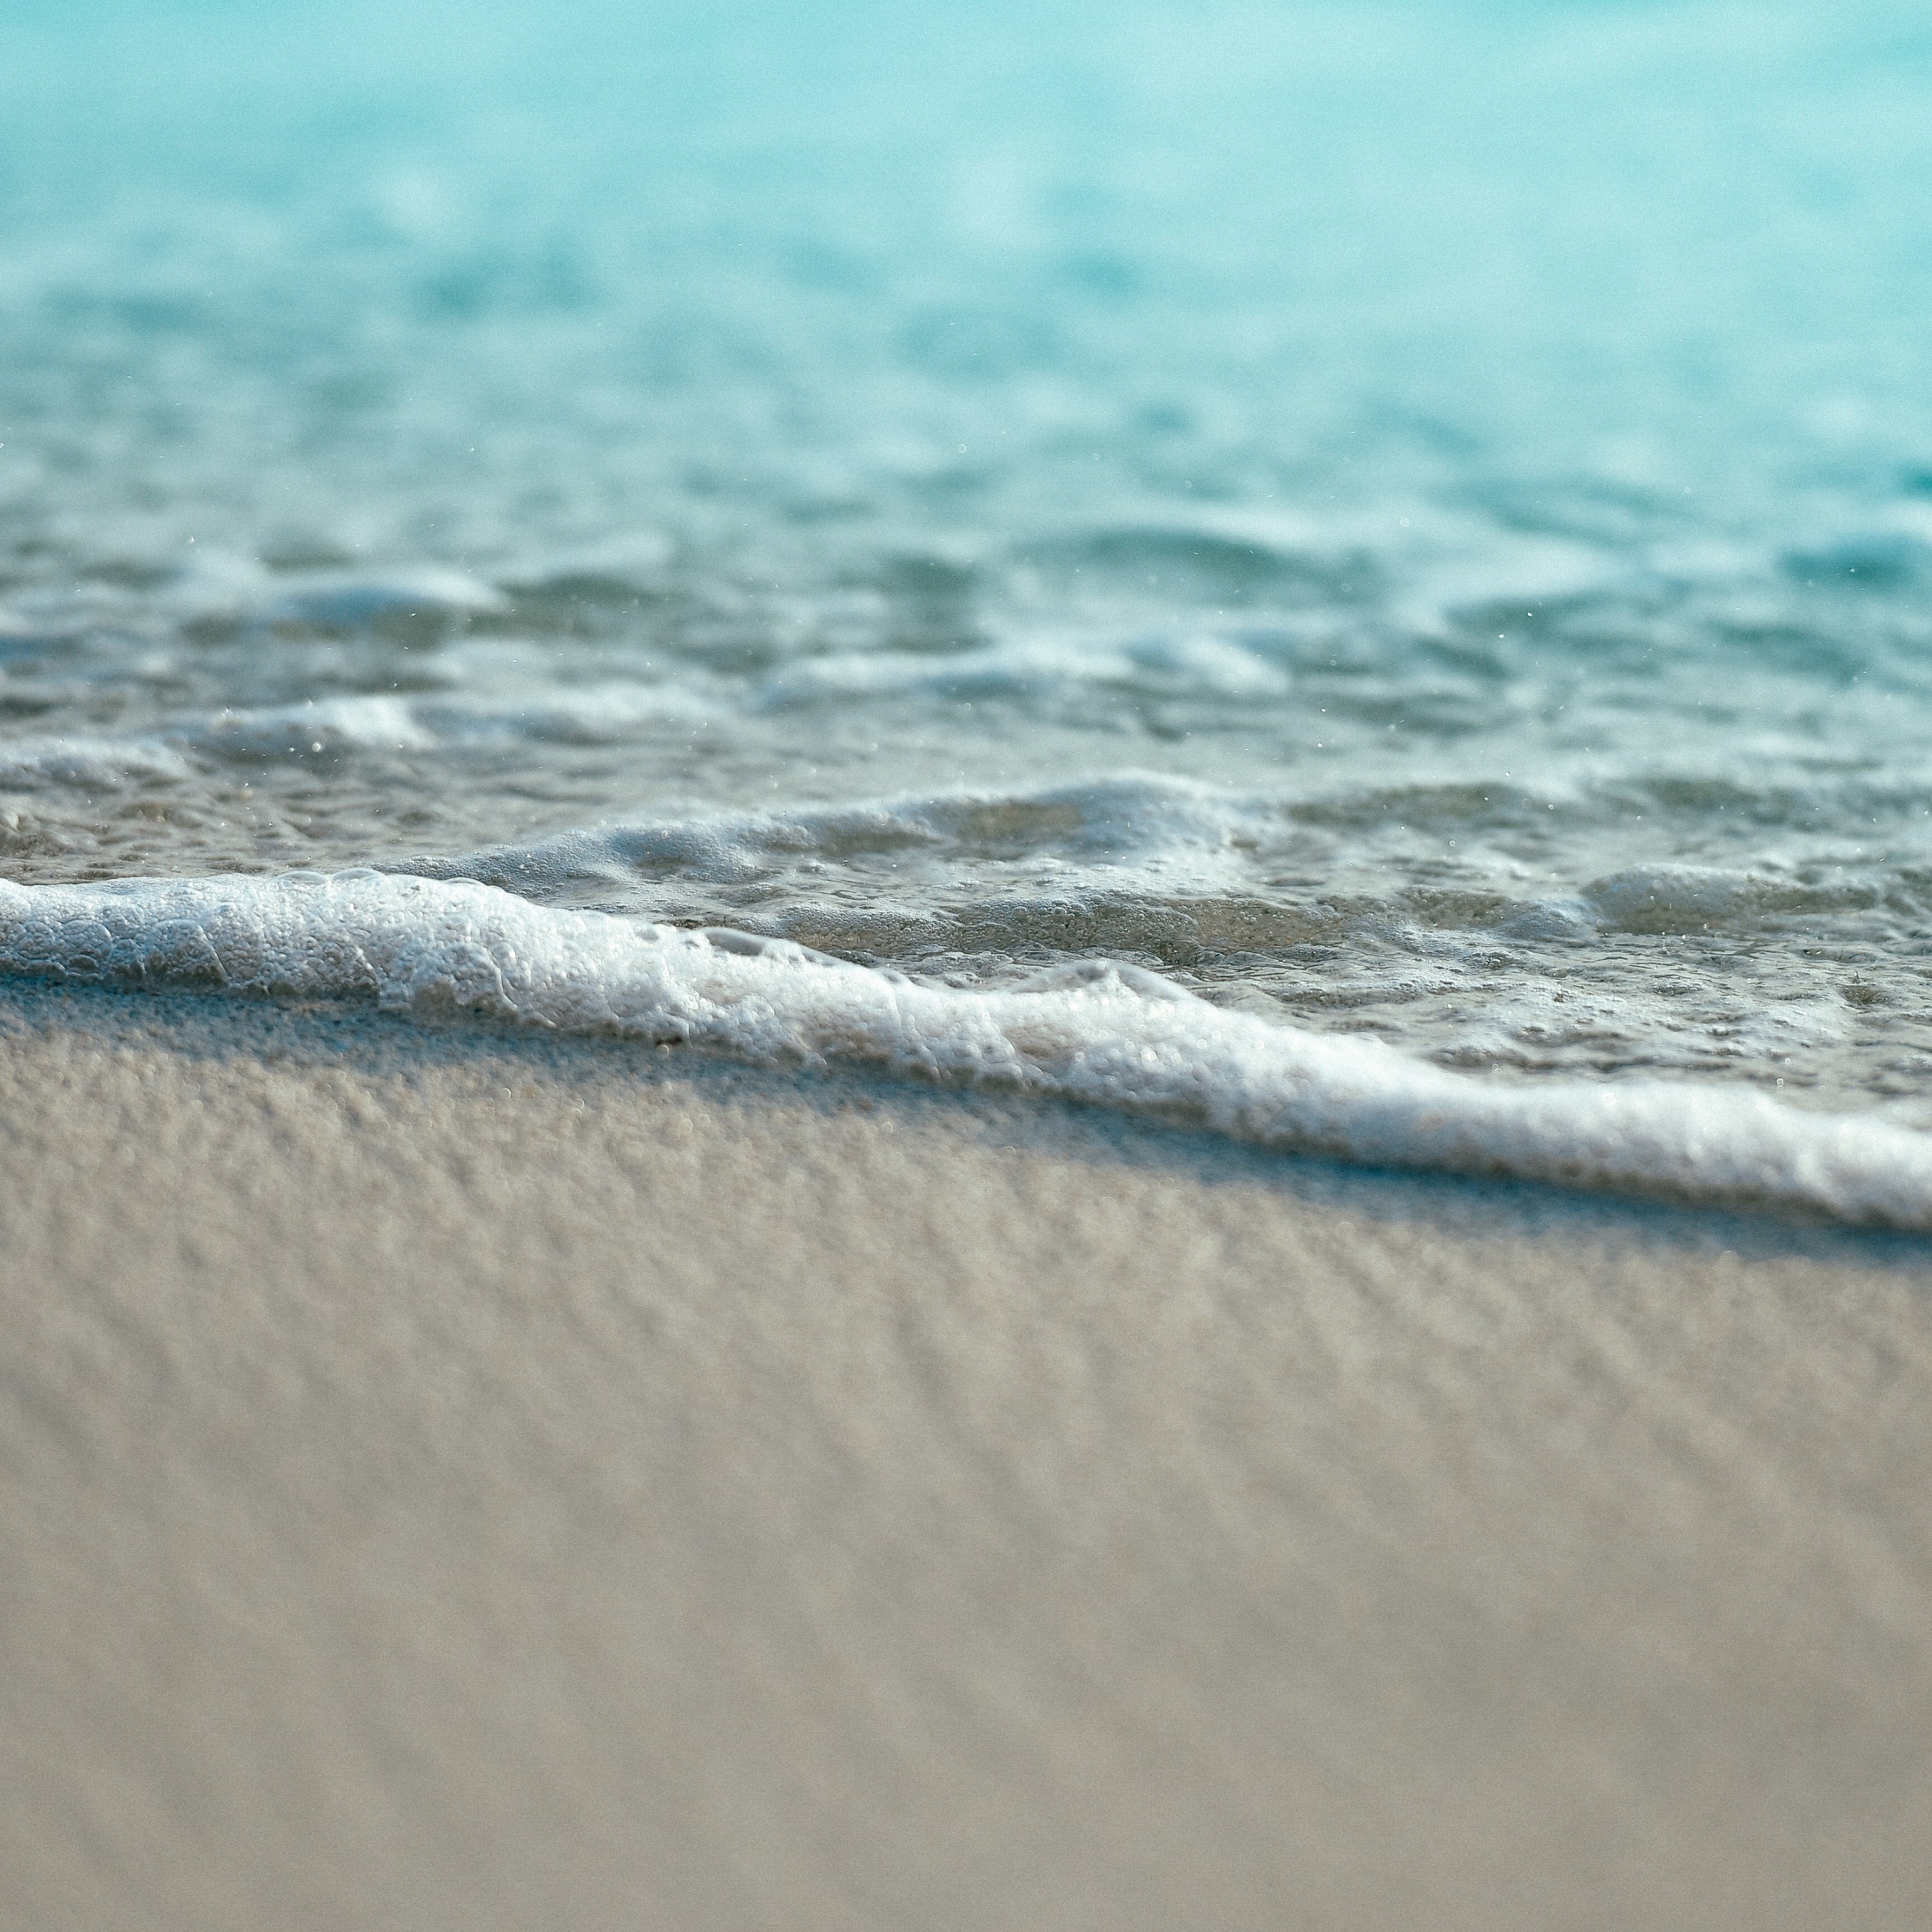 Turquoise ocean waters from Maldives wallpaper 2224x2224